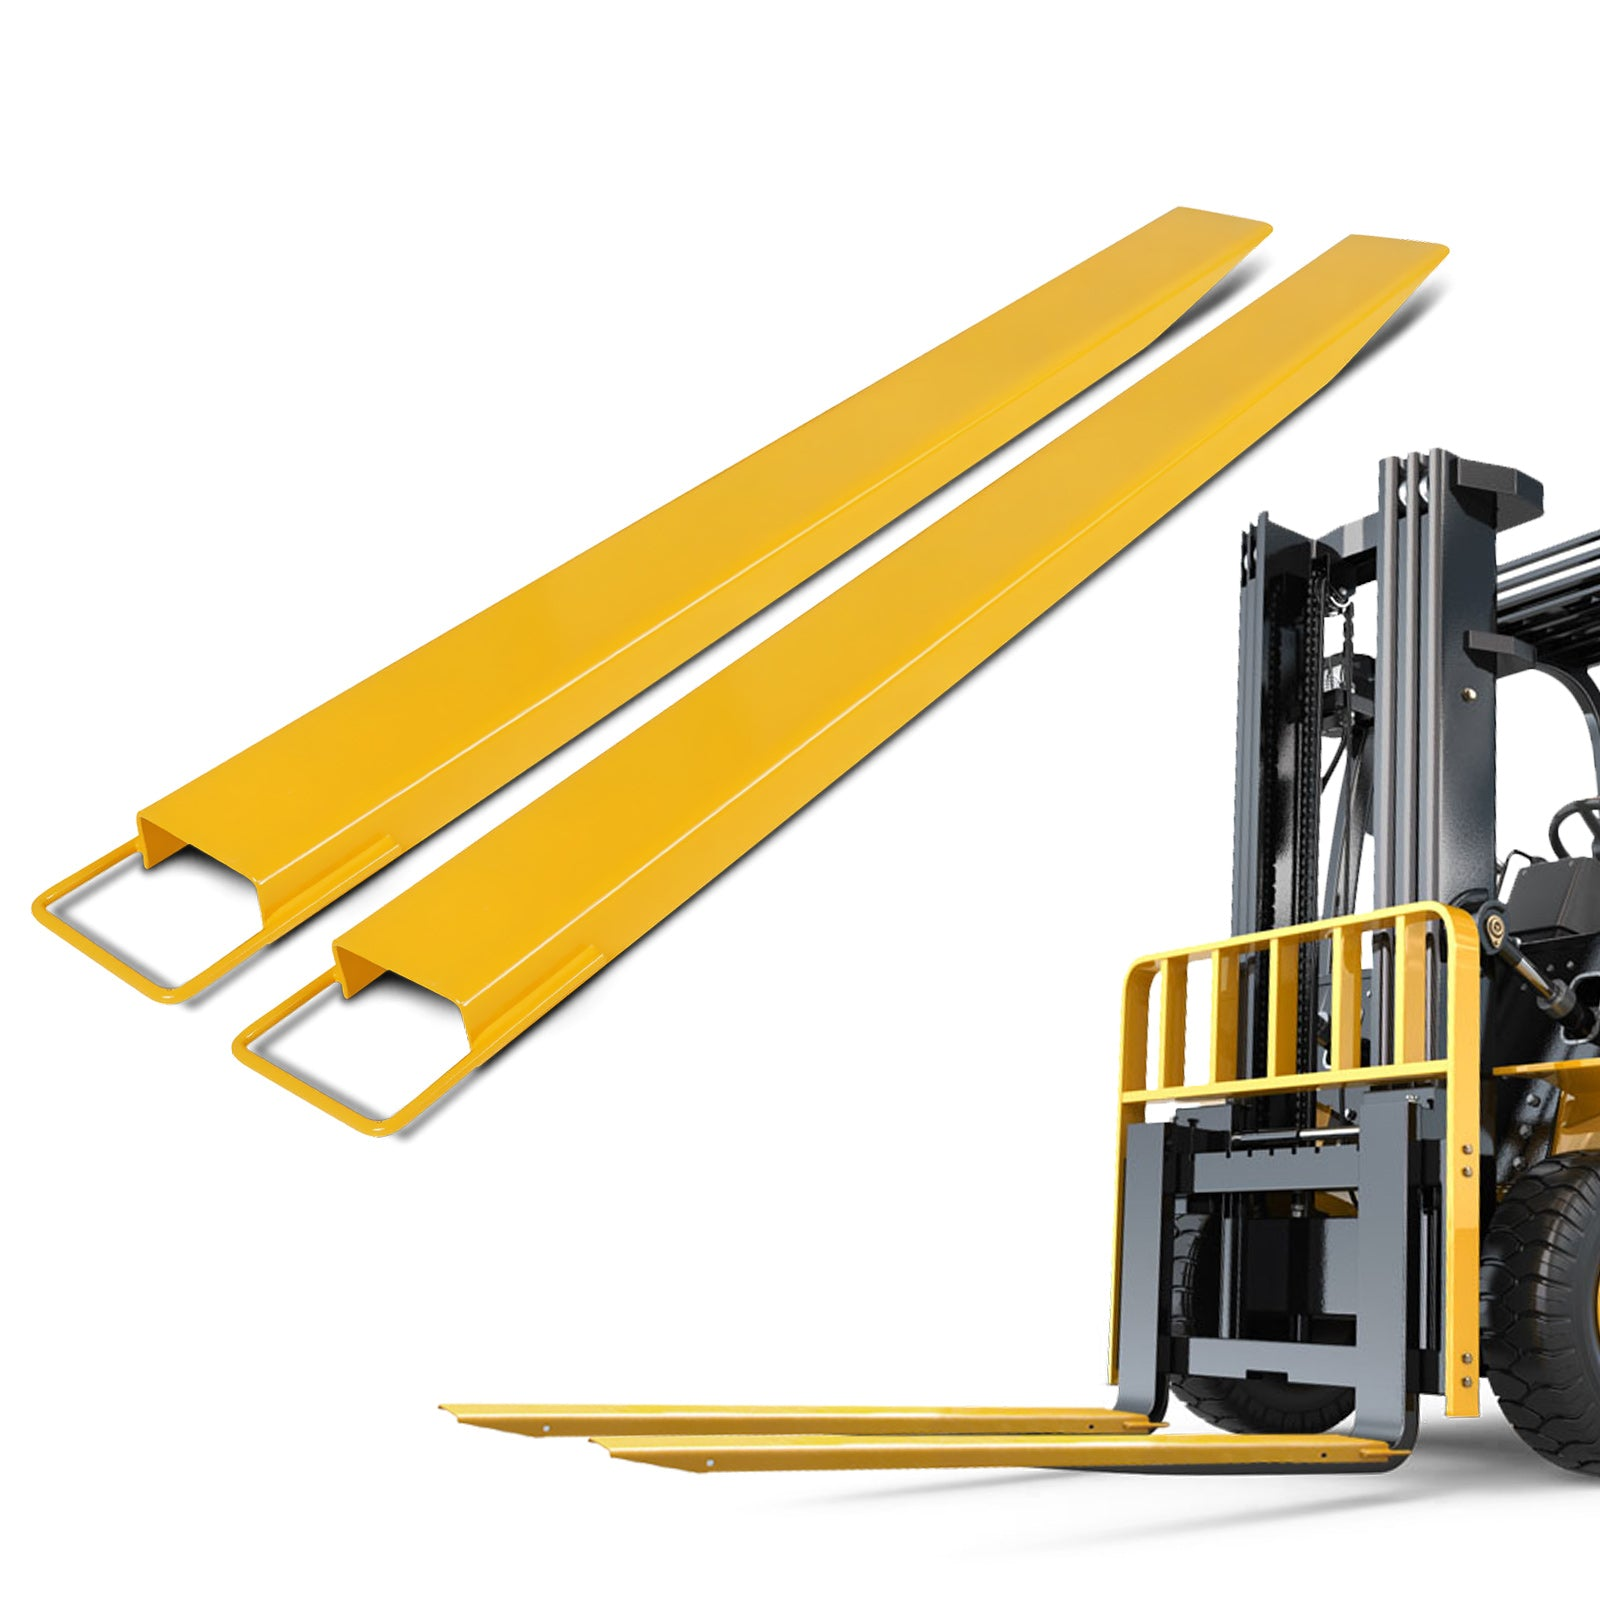 Pallet Fork Extension Forklift Extensions 72x6.5inch For Forklift Truck Loaders